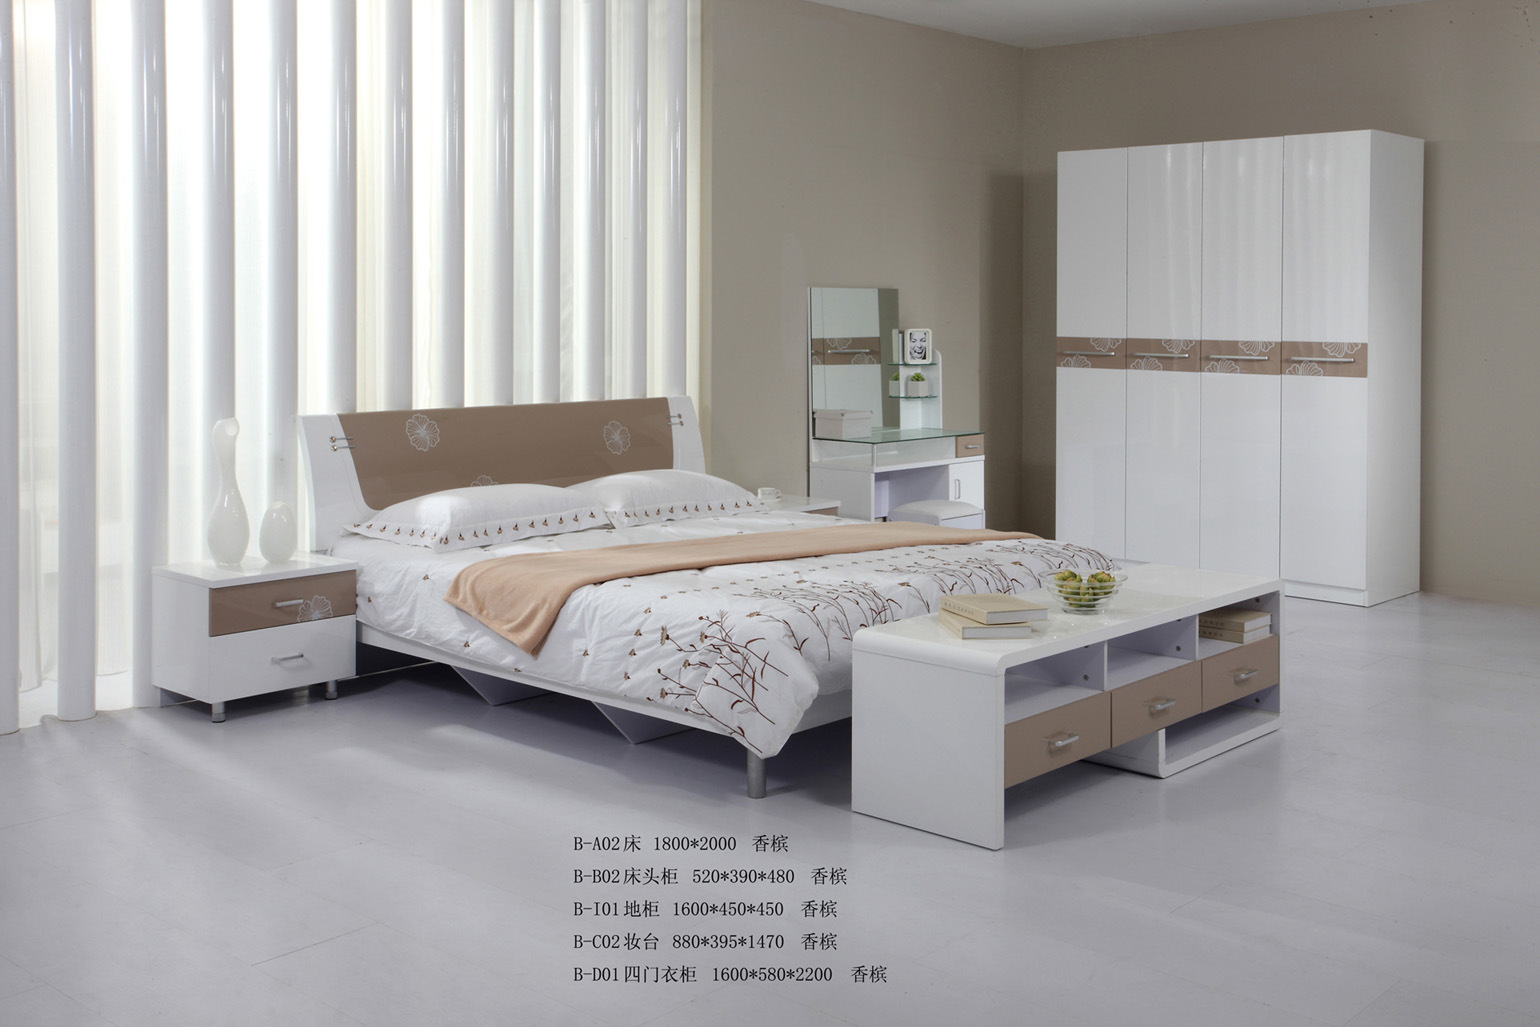 China bedroom furniture white shine b a02 china for White bedroom furniture